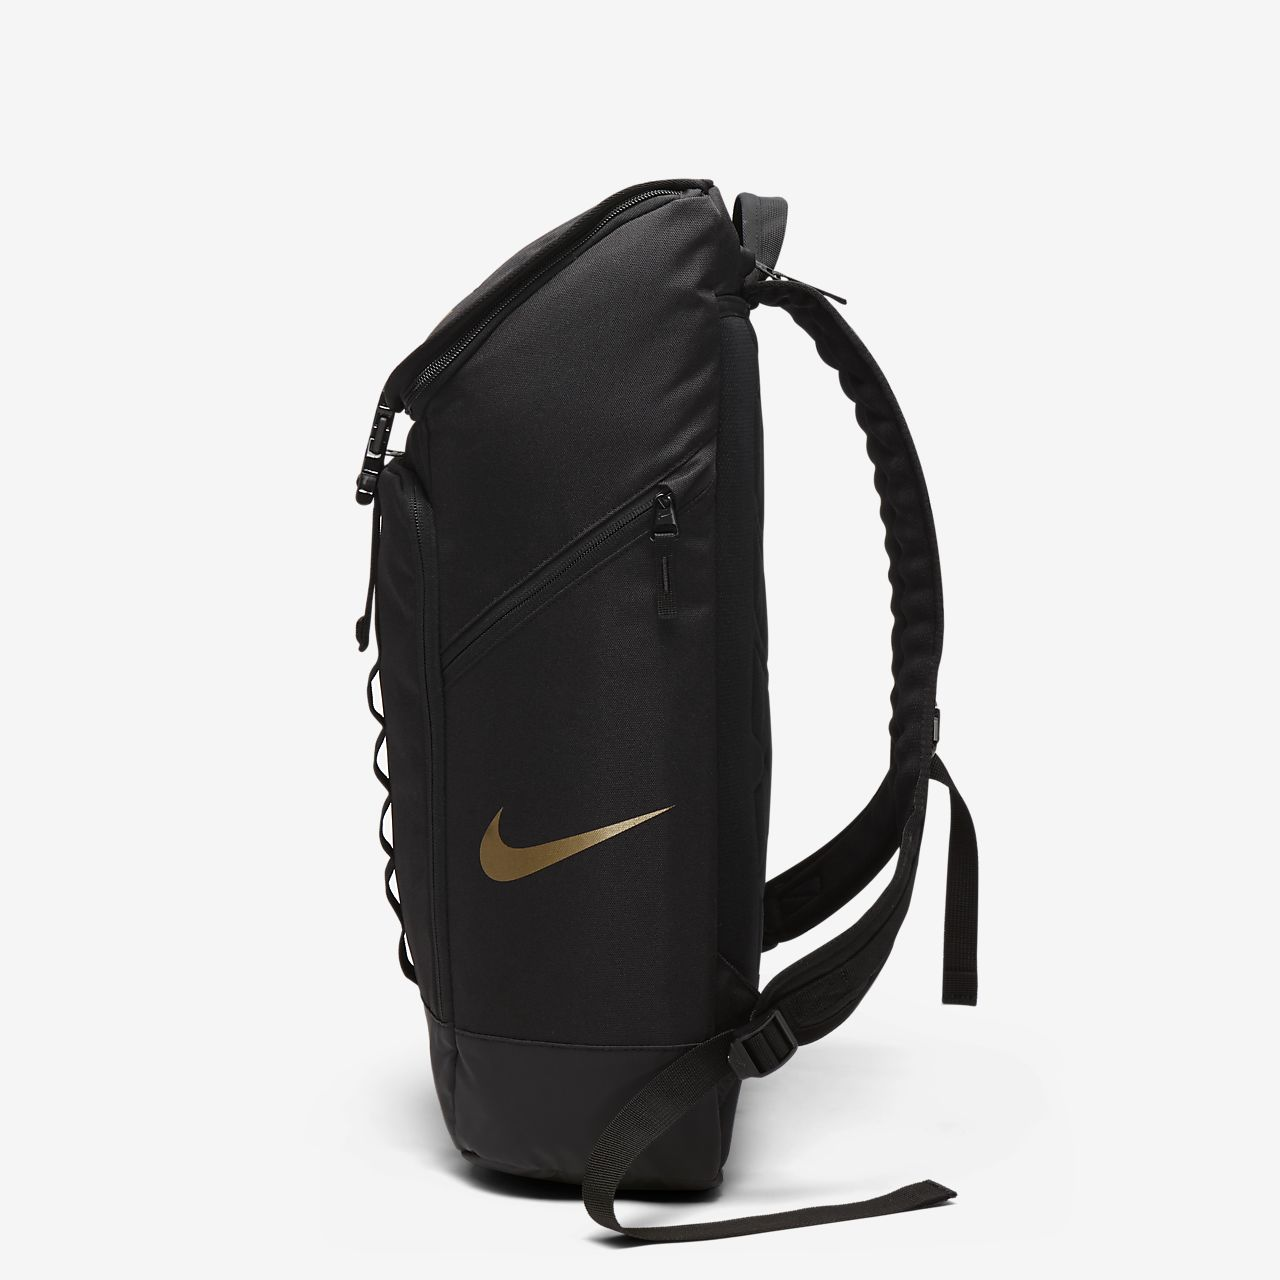 lebron ambassador backpack review cheap   OFF72% The Largest Catalog  Discounts 09230cdf4d3d9